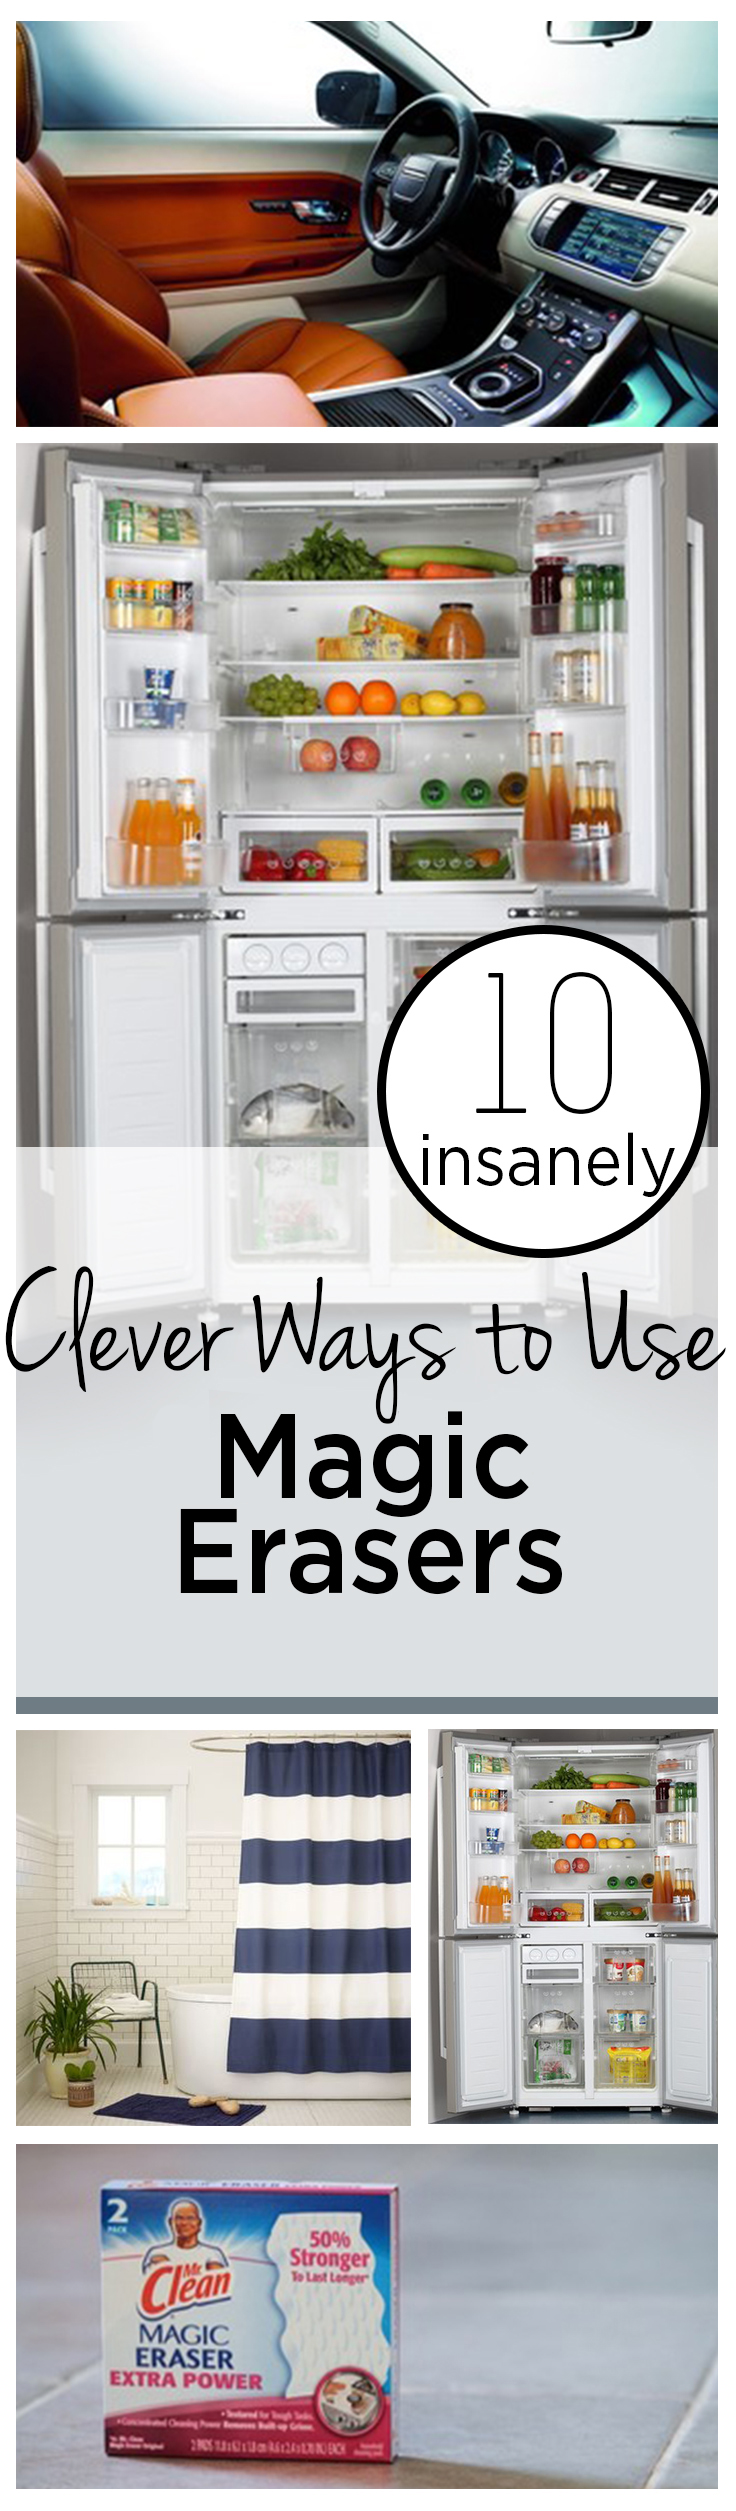 Magic erasers, how to use magic eraser, cleaning hacks, popular pin, cleaning, cleaning tips, clean home.